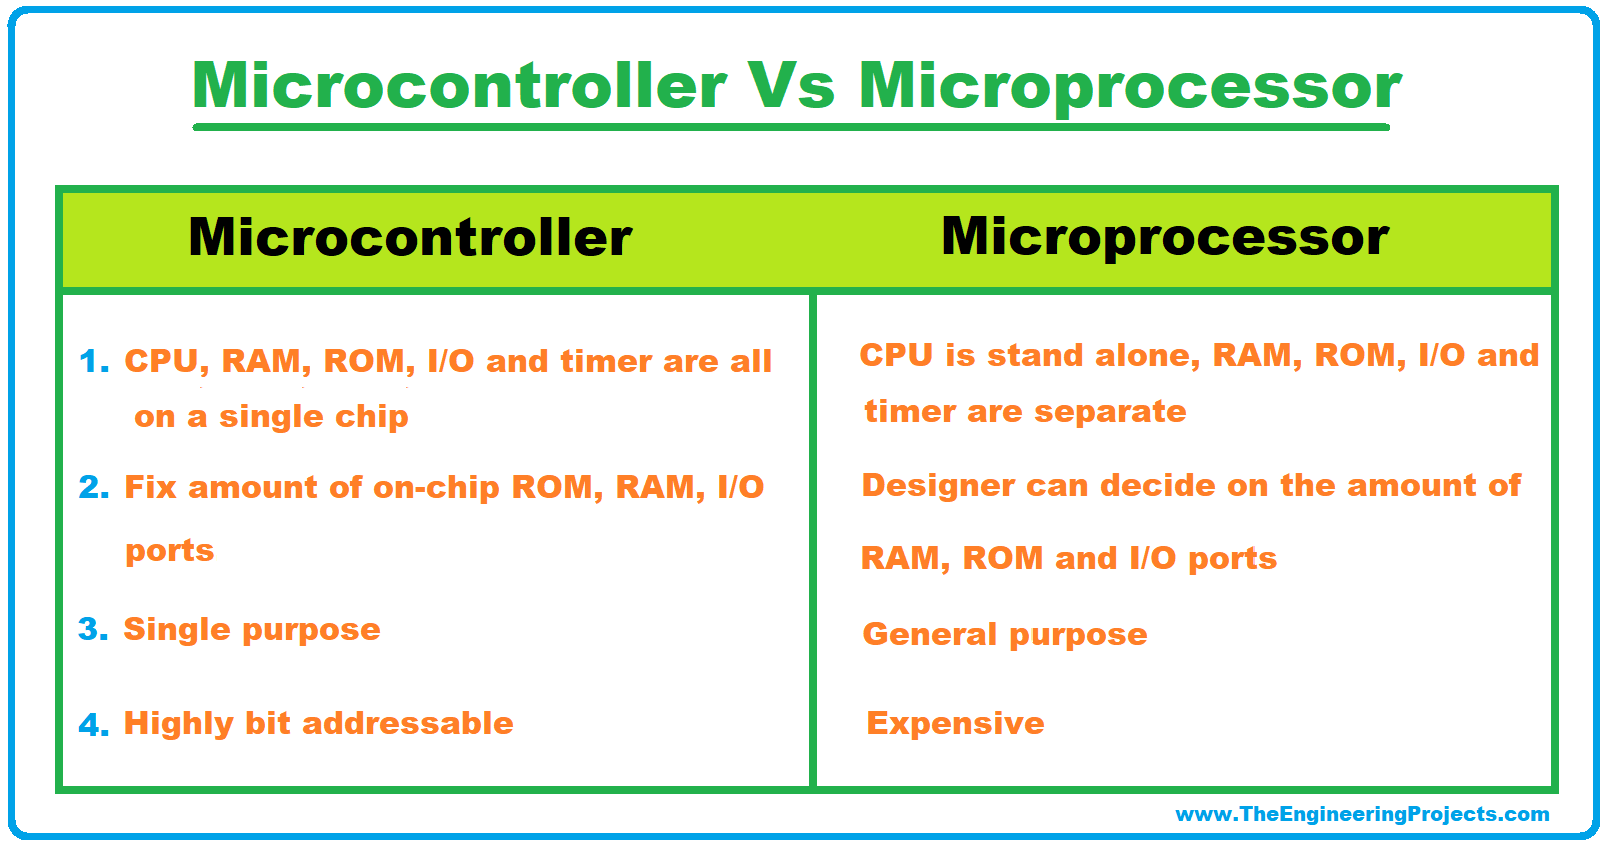 What is a Microcontroller, Microcontrollers Compilers, Microcontrollers Architecture, Types of Microcontrollers, Microcontroller Vs Microprocessor, Microcontroller Characteristics, Microcontrollers Applications